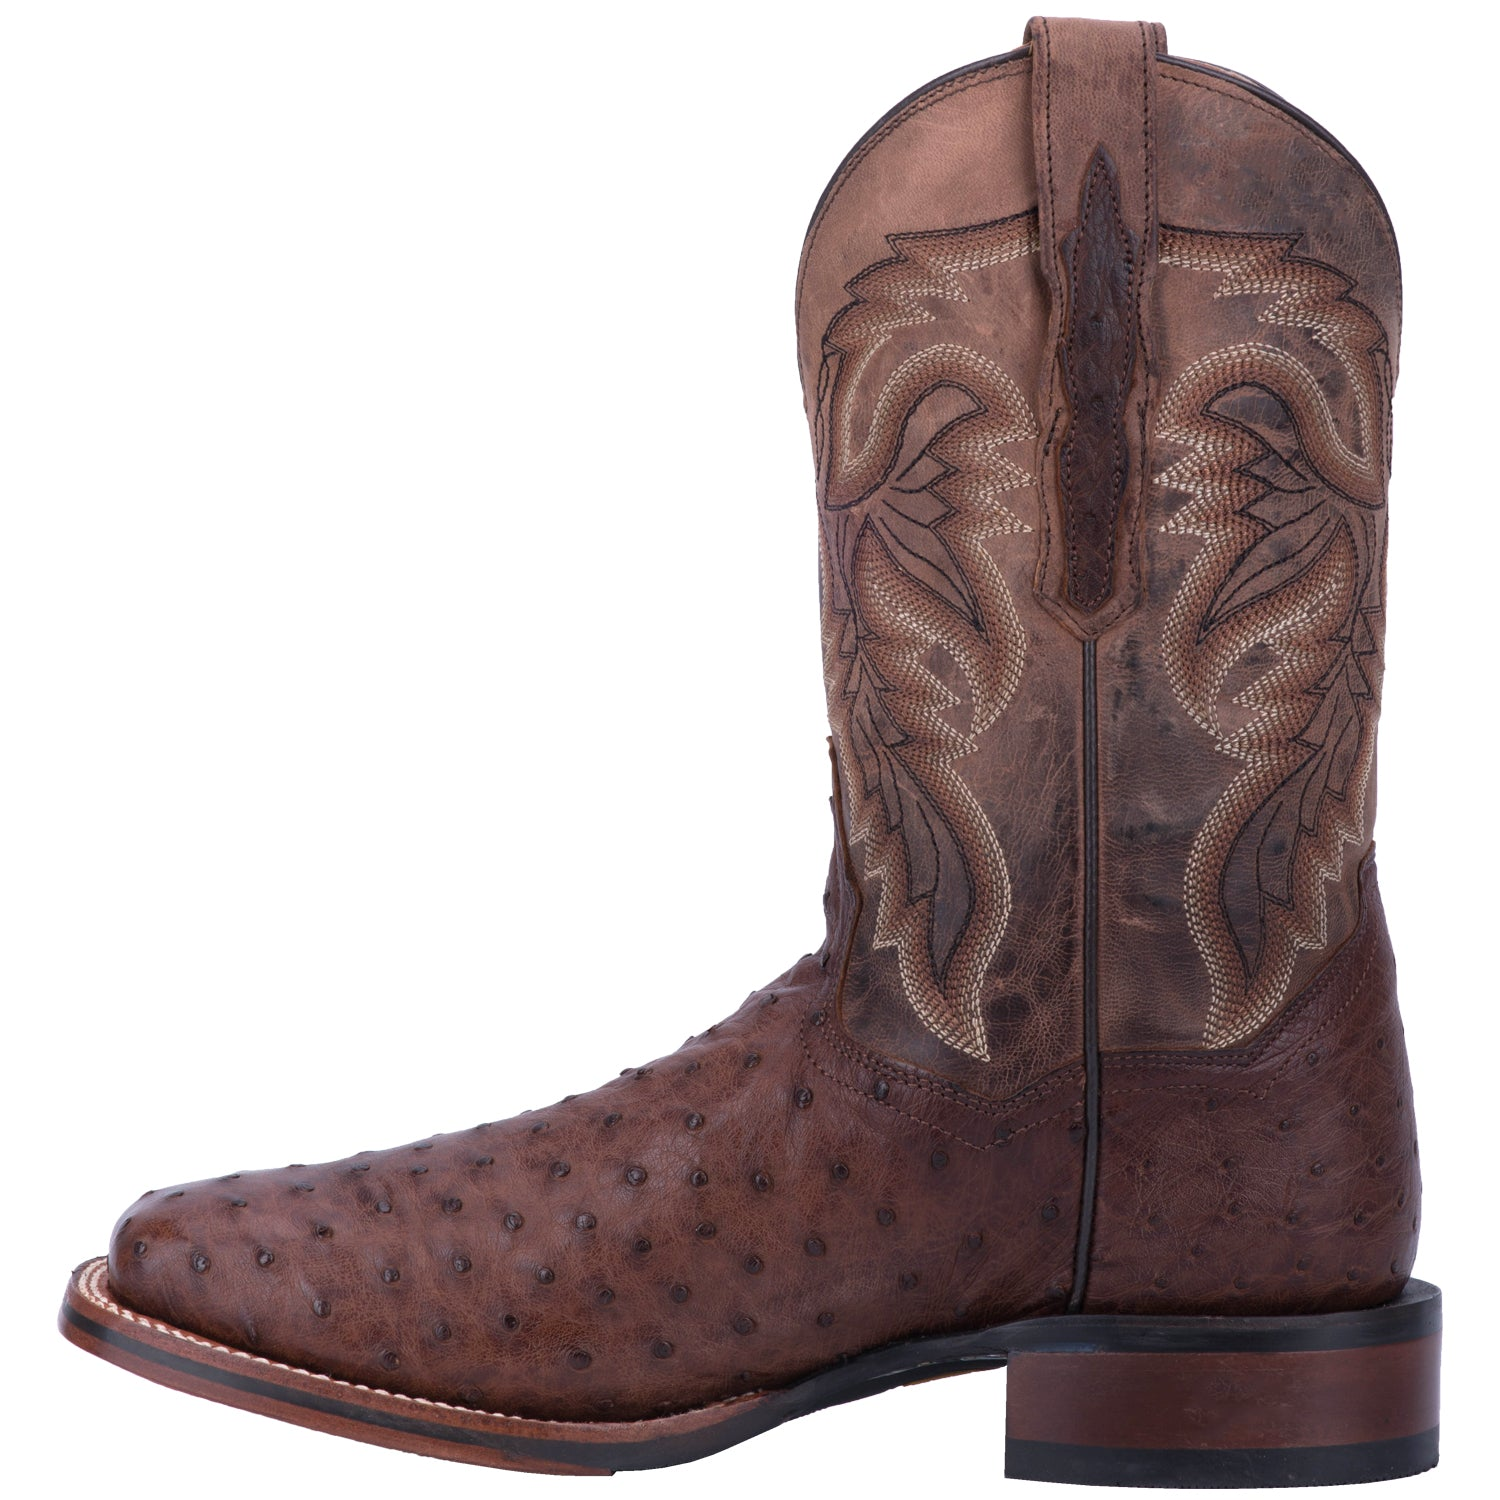 ALAMOSA FULL QUILL OSTRICH BOOT 4248825495594